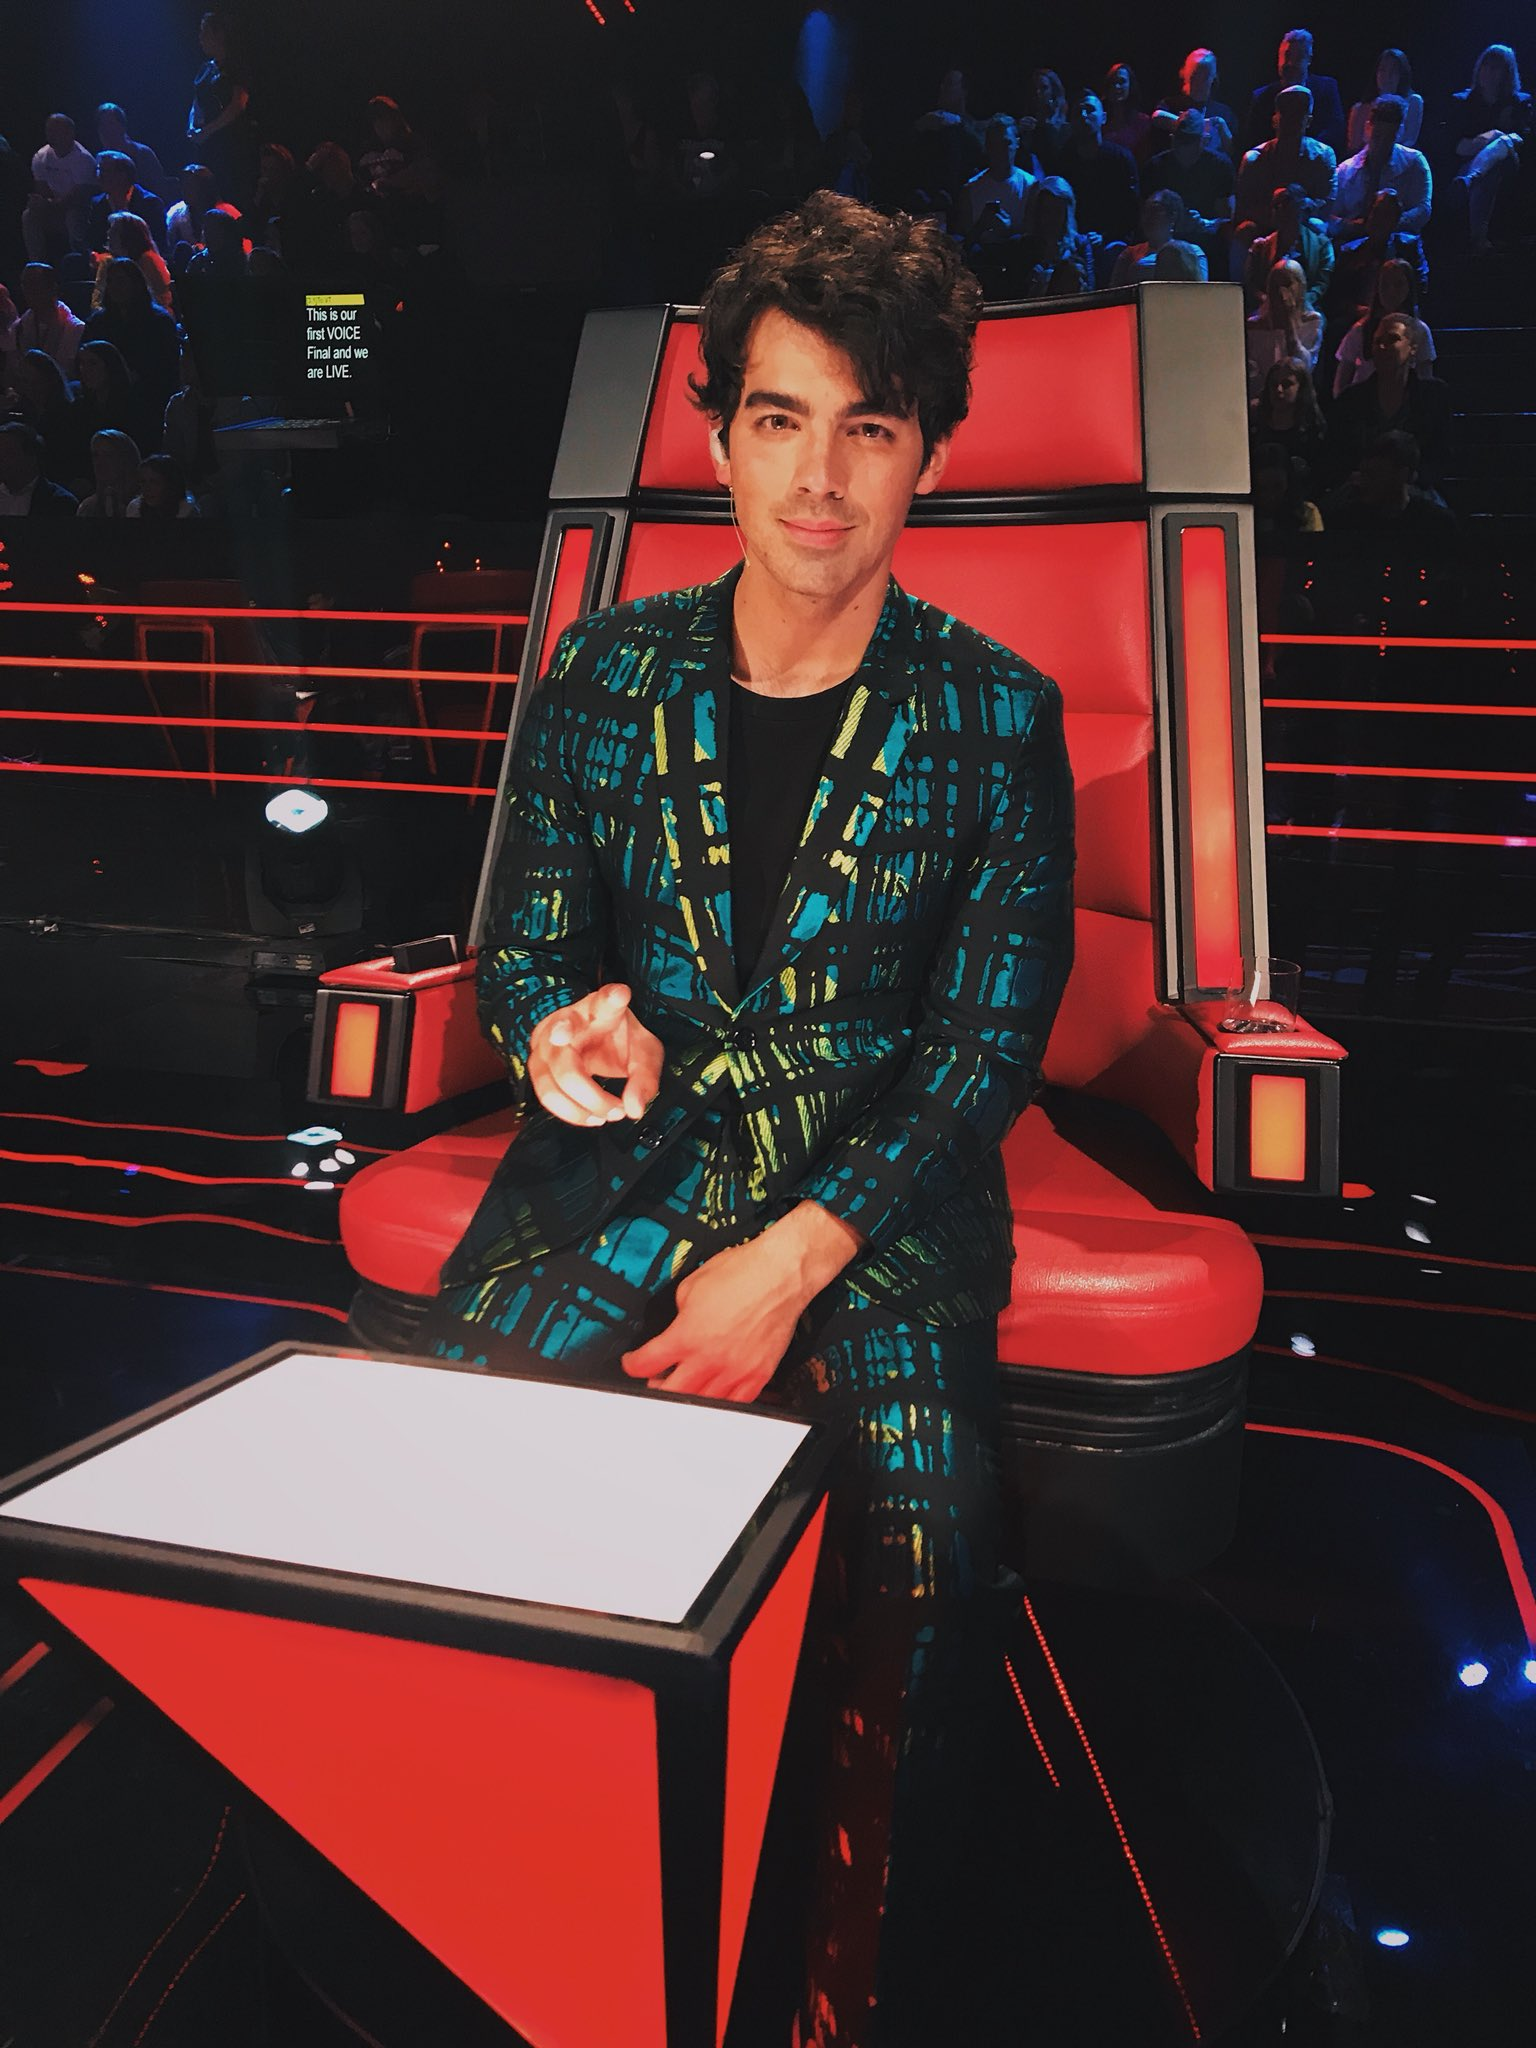 Back in the red chair tonight at 7pm for @TheVoiceAU!! #TeamJoe is bringing ������ tonight https://t.co/LTaUvkCnKB